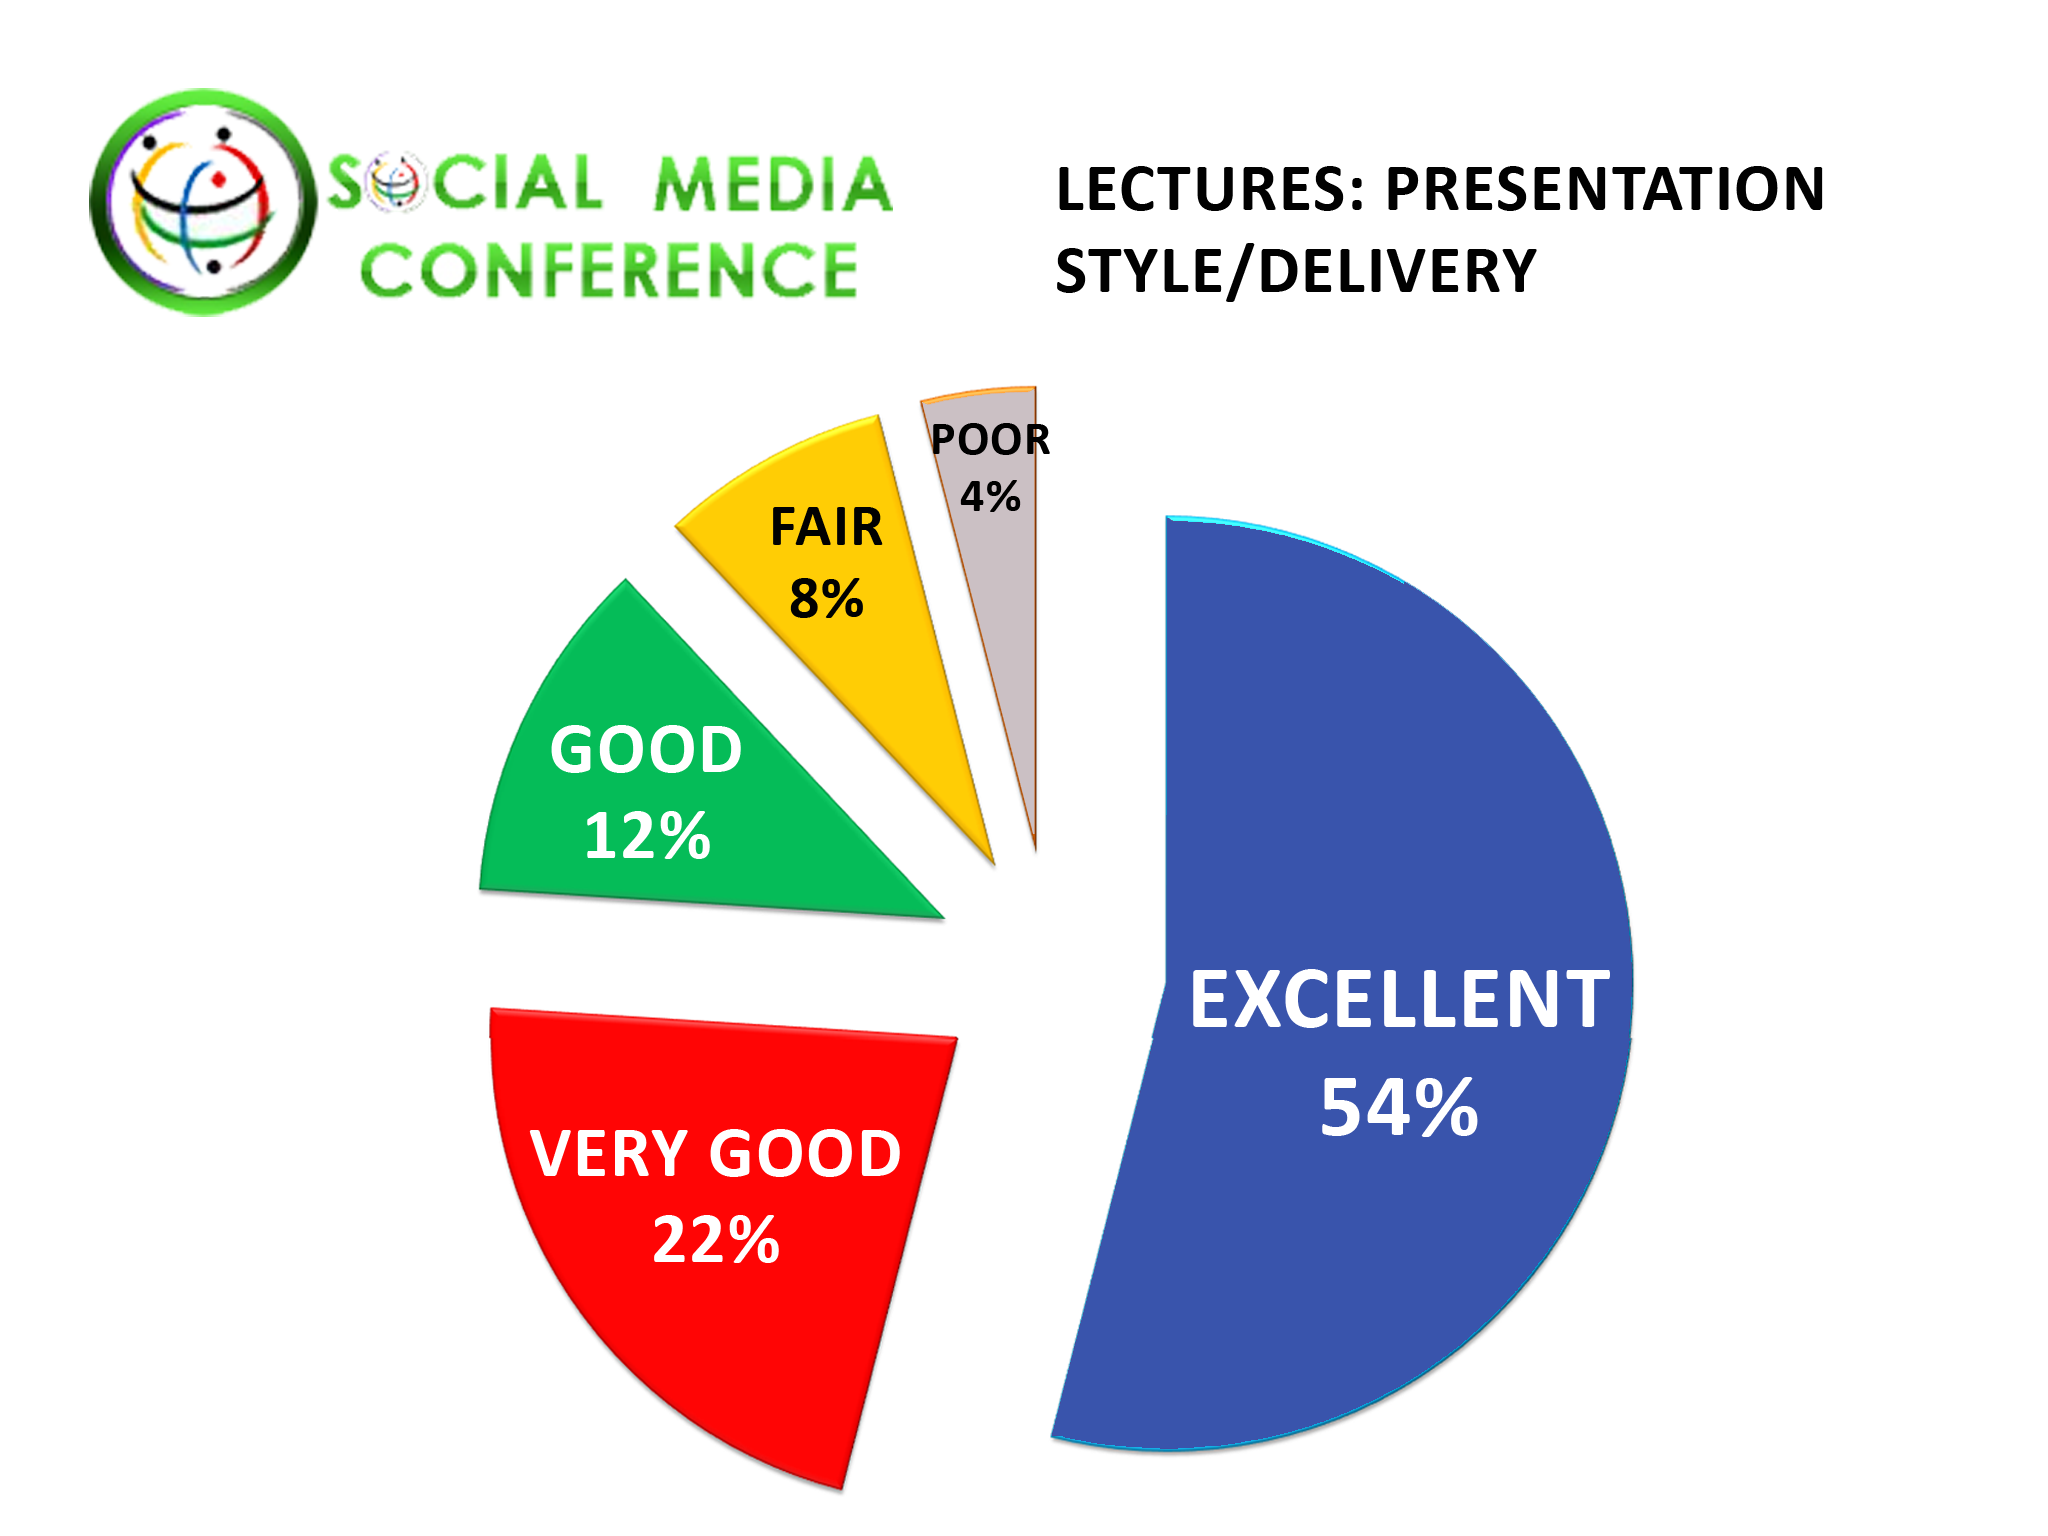 Social Networking Conference Online Dating Expo and Convention Presentation Style and Delivery Ratings Given by Delegates